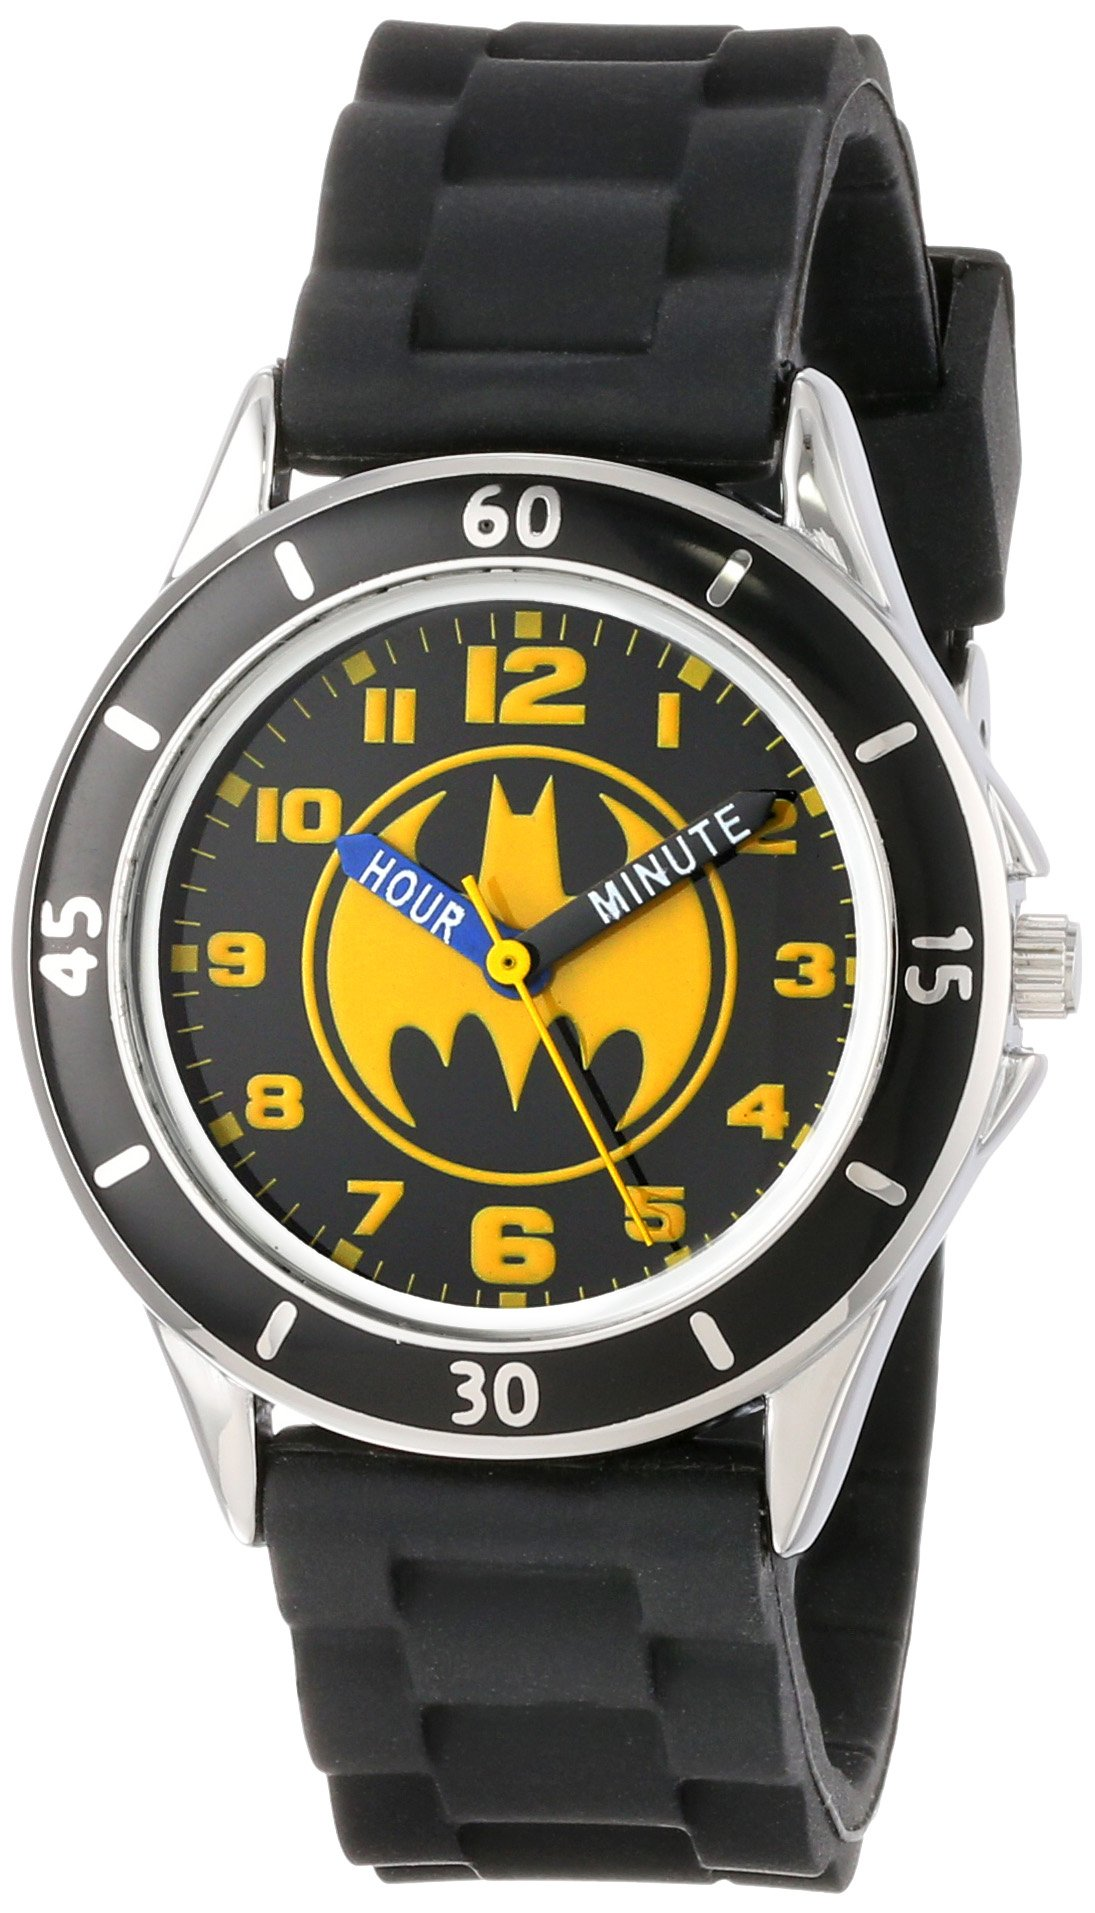 Batman Kids' Analog Watch with Silver-Tone Casing, Black Bezel, Black Strap - Official Yellow/Black Batman Logo on The Dial, Time-Teacher Watch, Safe for Children - Model: BAT9152 by DC Comics